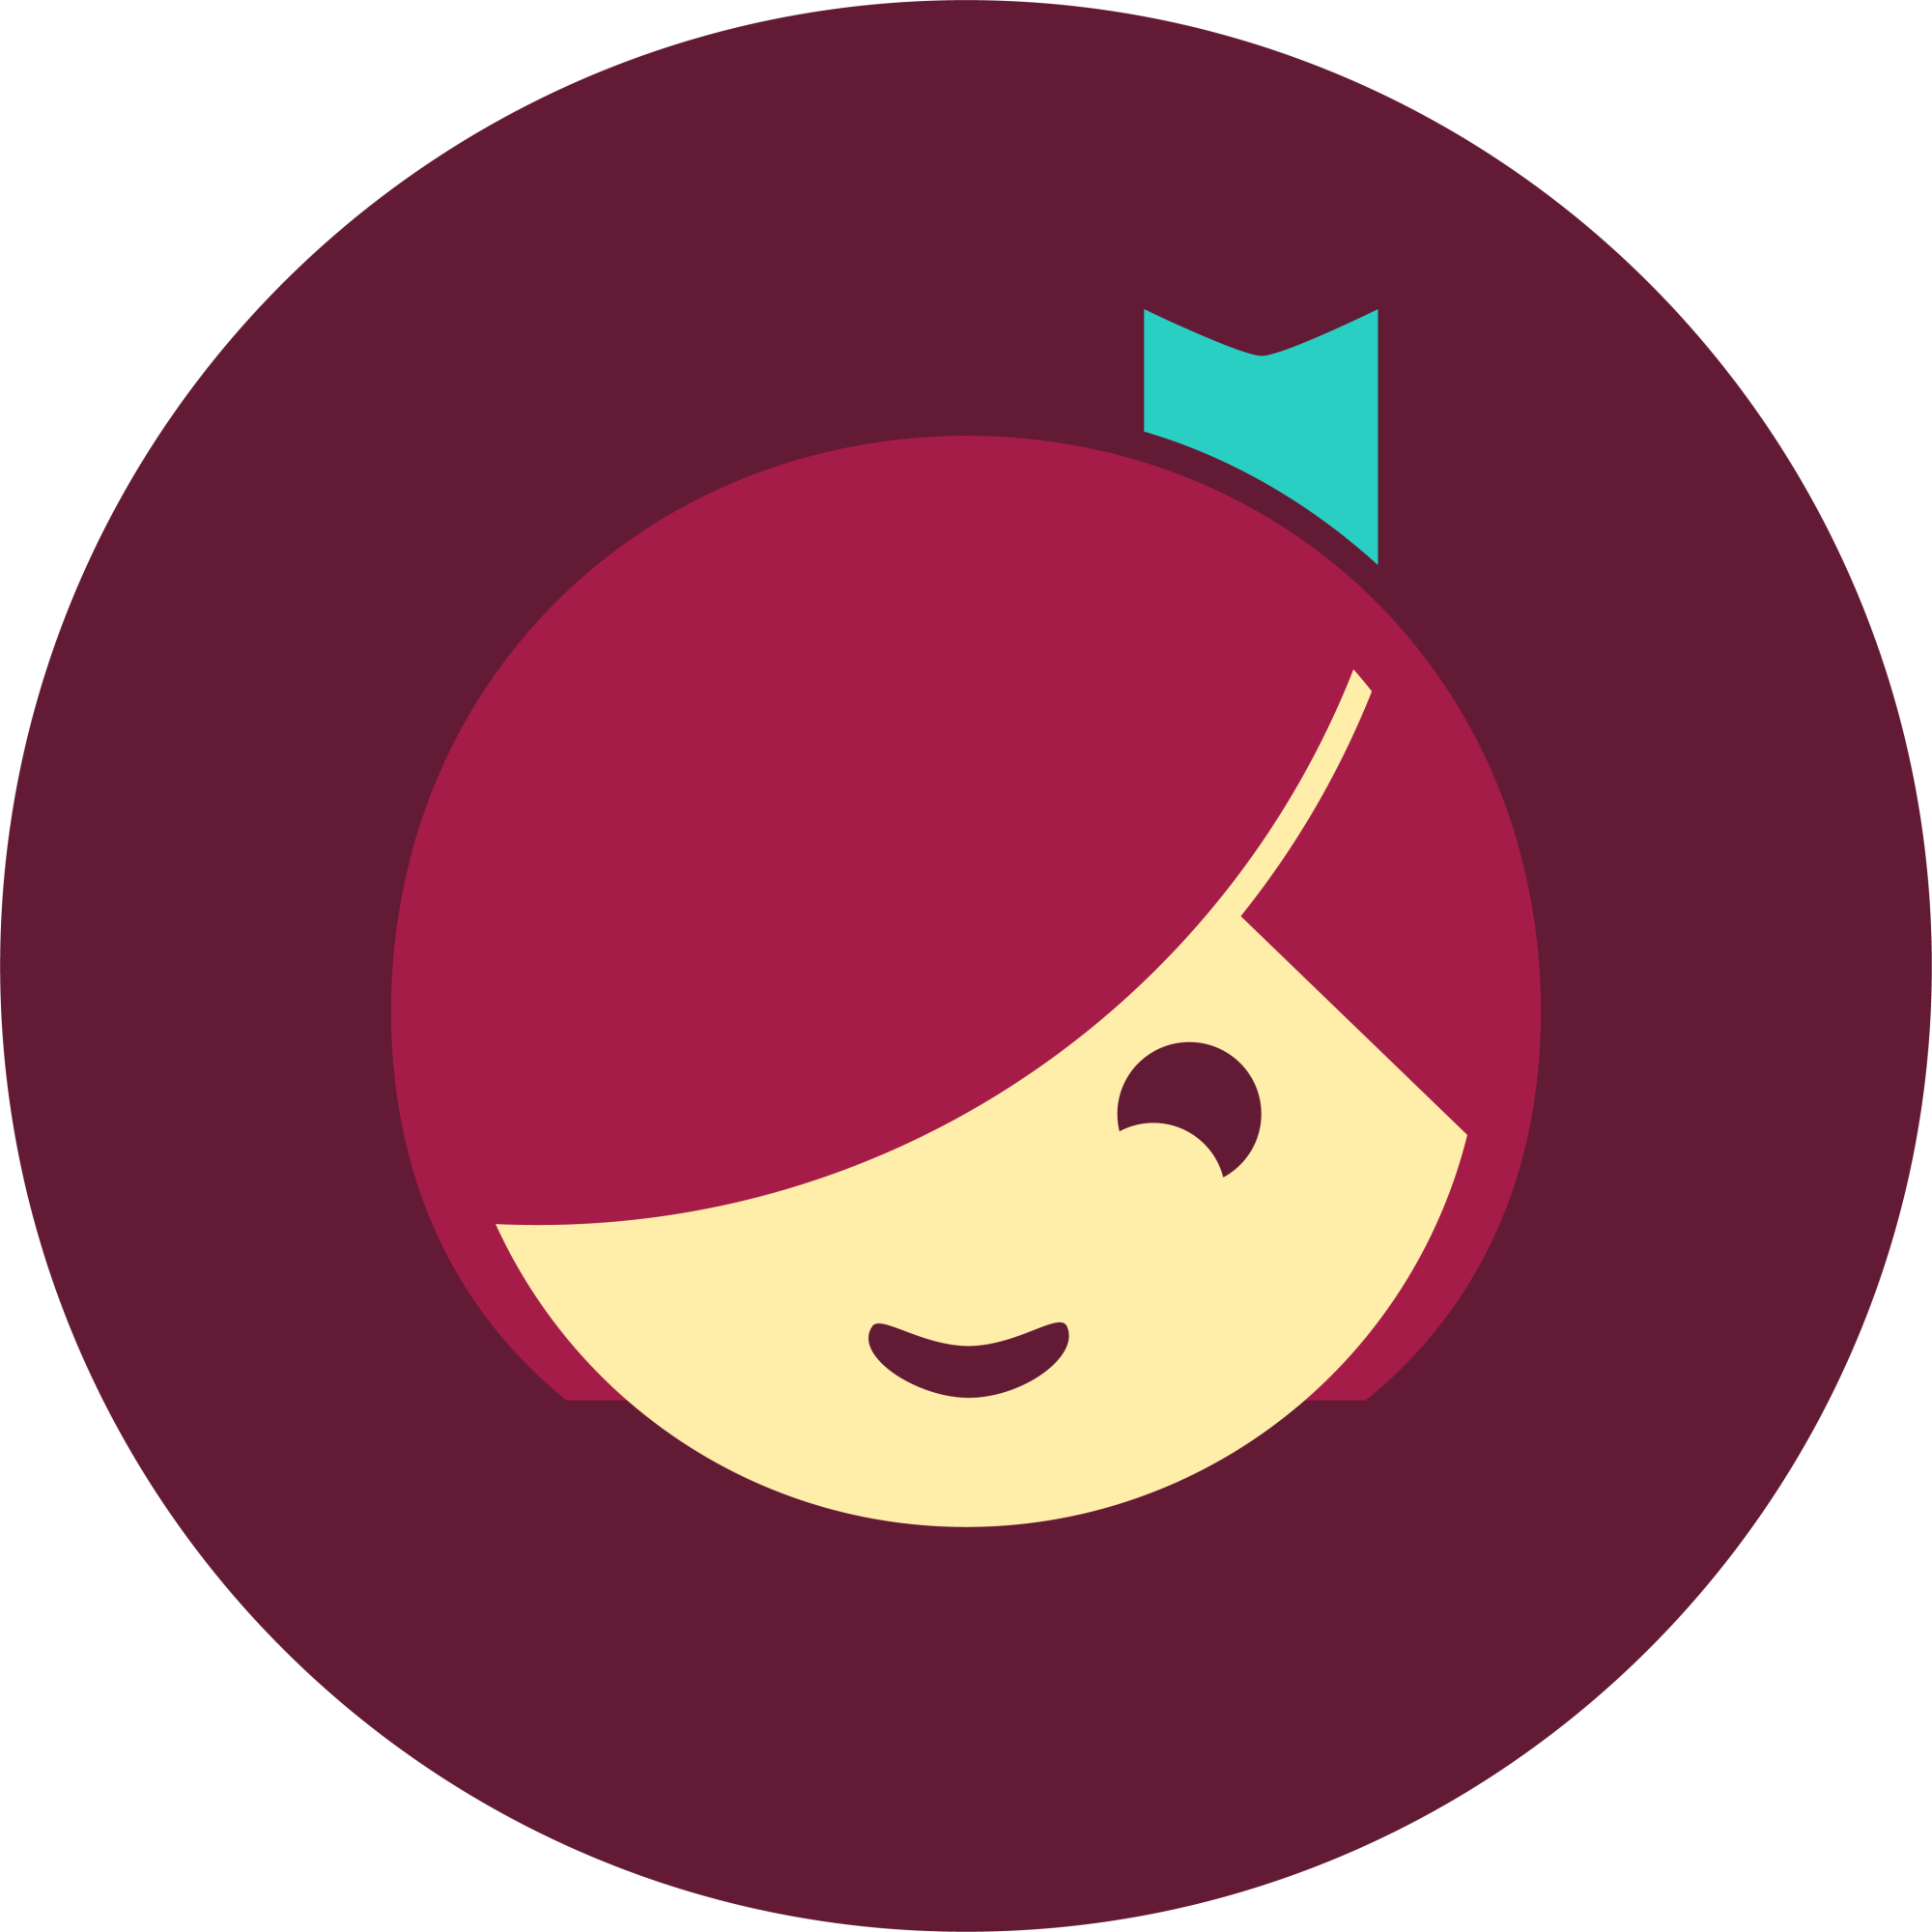 Logo for the Libby App by Overdrive